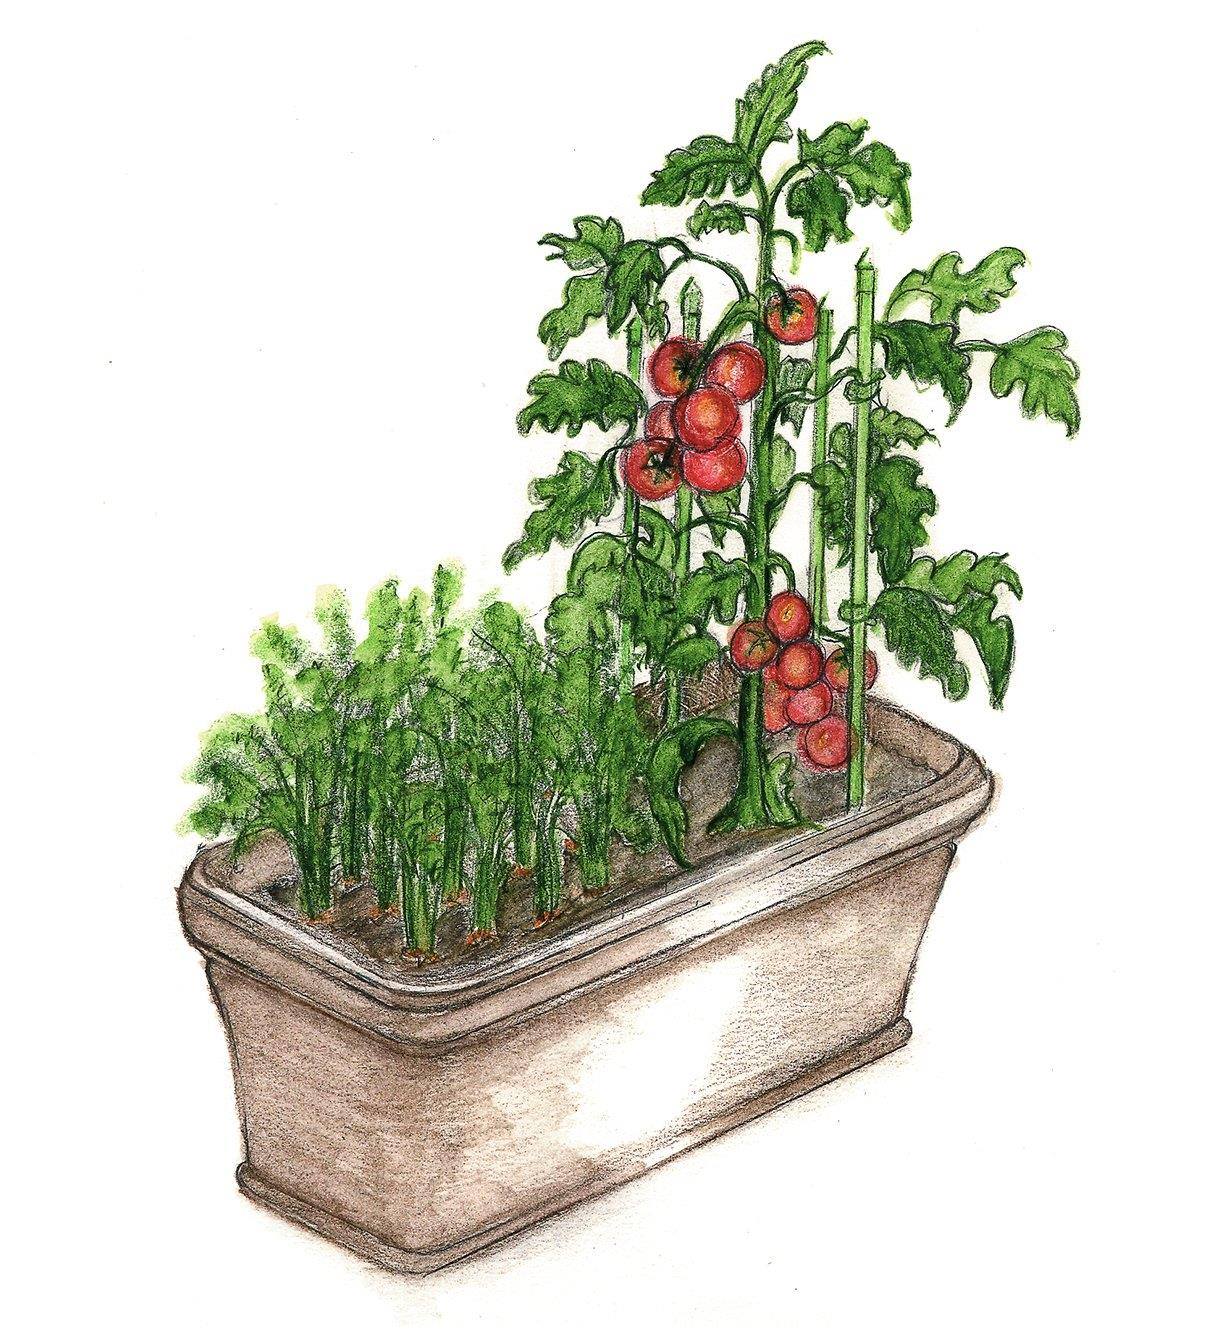 Illustration shows tomatoes and herbs growing in a self-watering planter